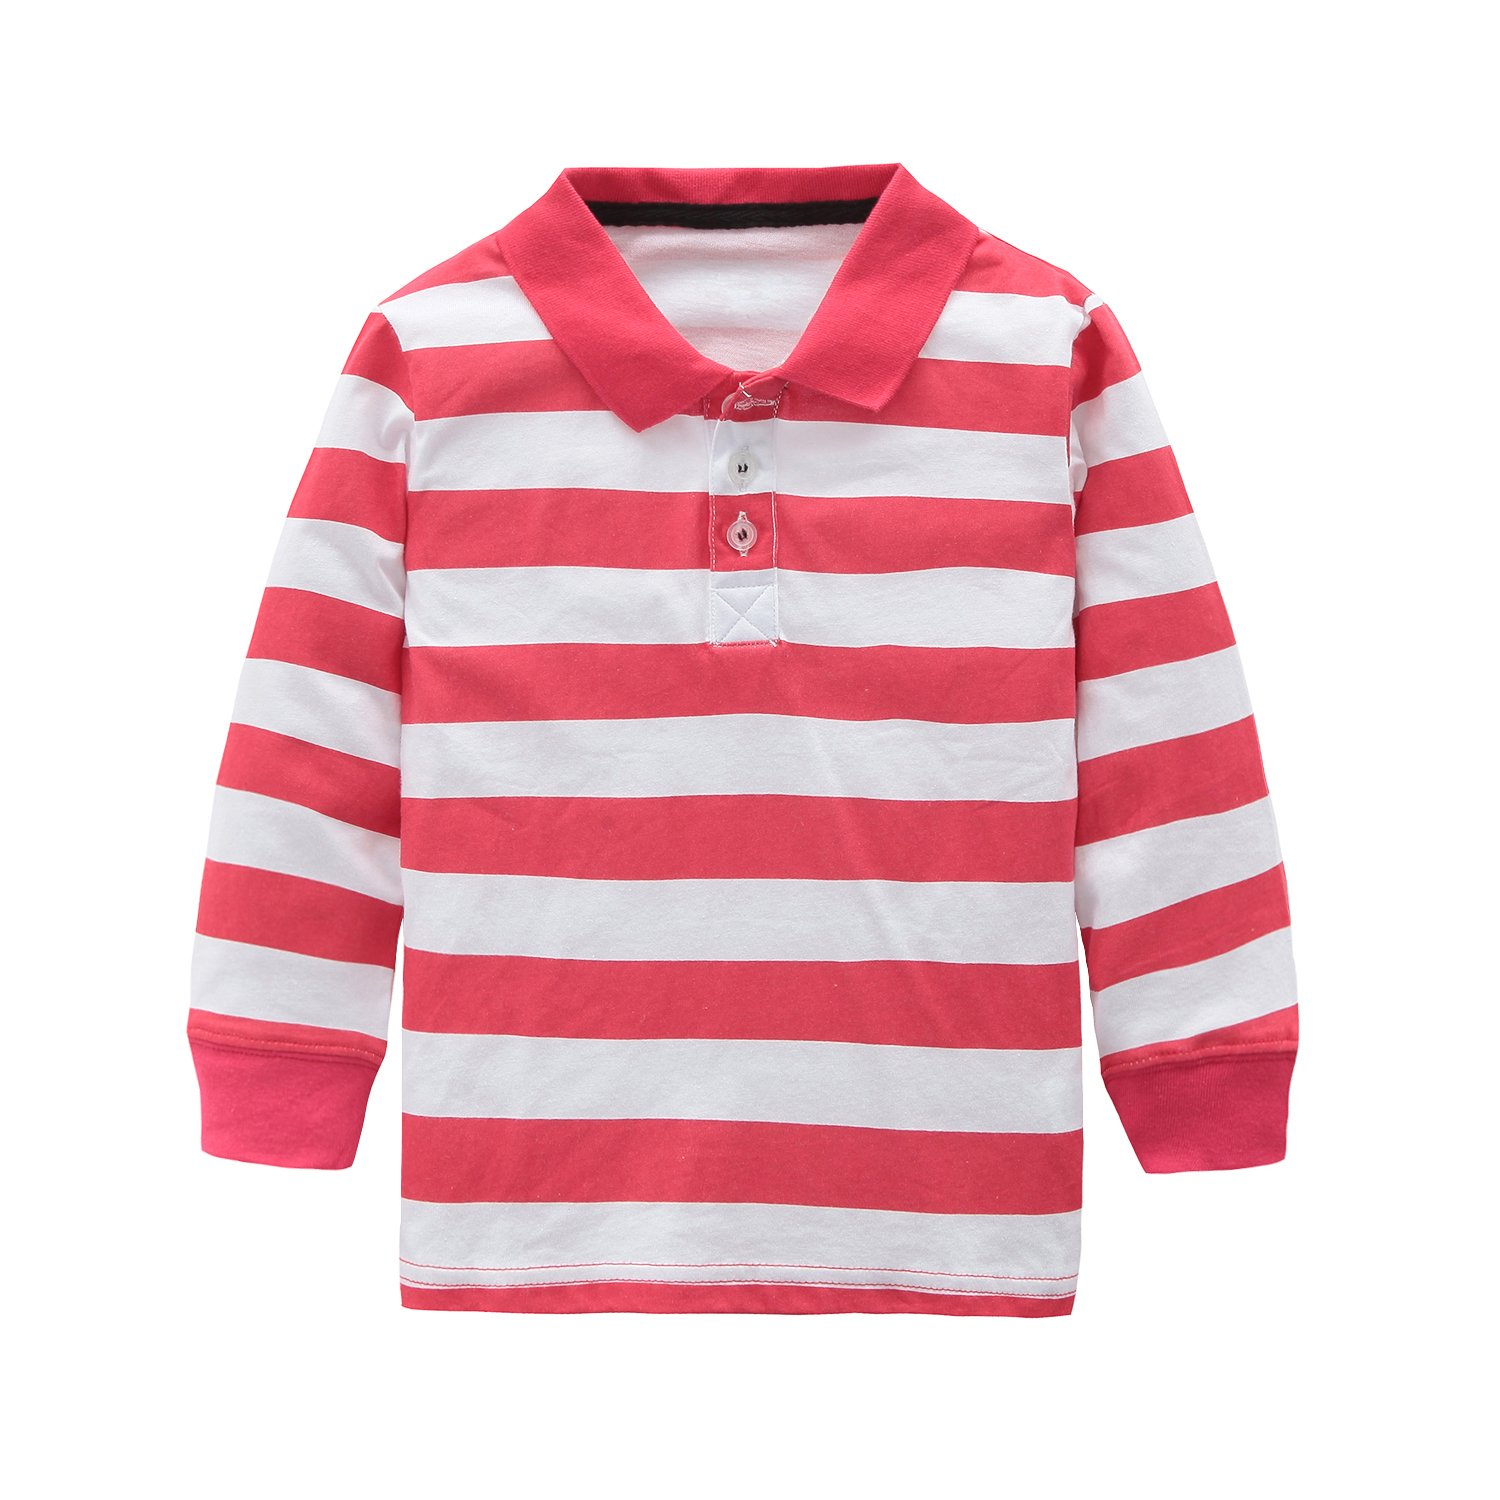 HowJoJo Toddler Boys Cotton Long Sleeve T-Shirts Striped Polo Shirts Red 3T